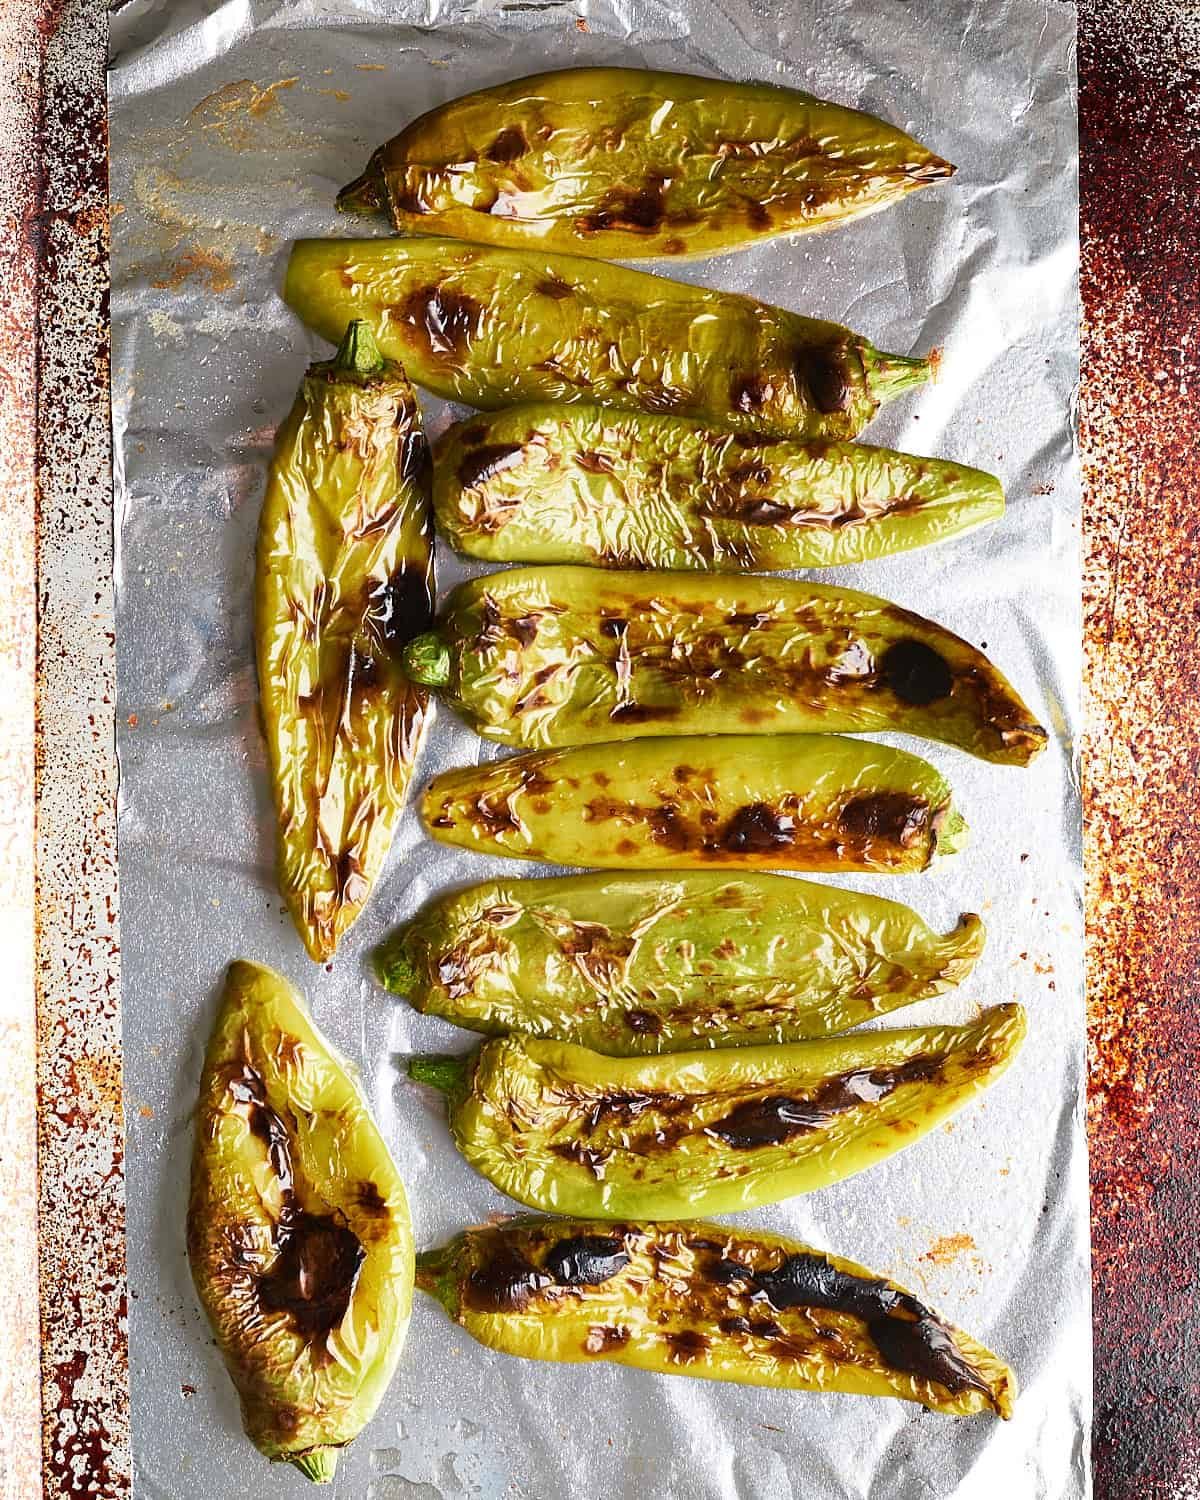 Top down view of Roasted Hatch Chiles on a baking sheet and foil_Resplendent Kitchen